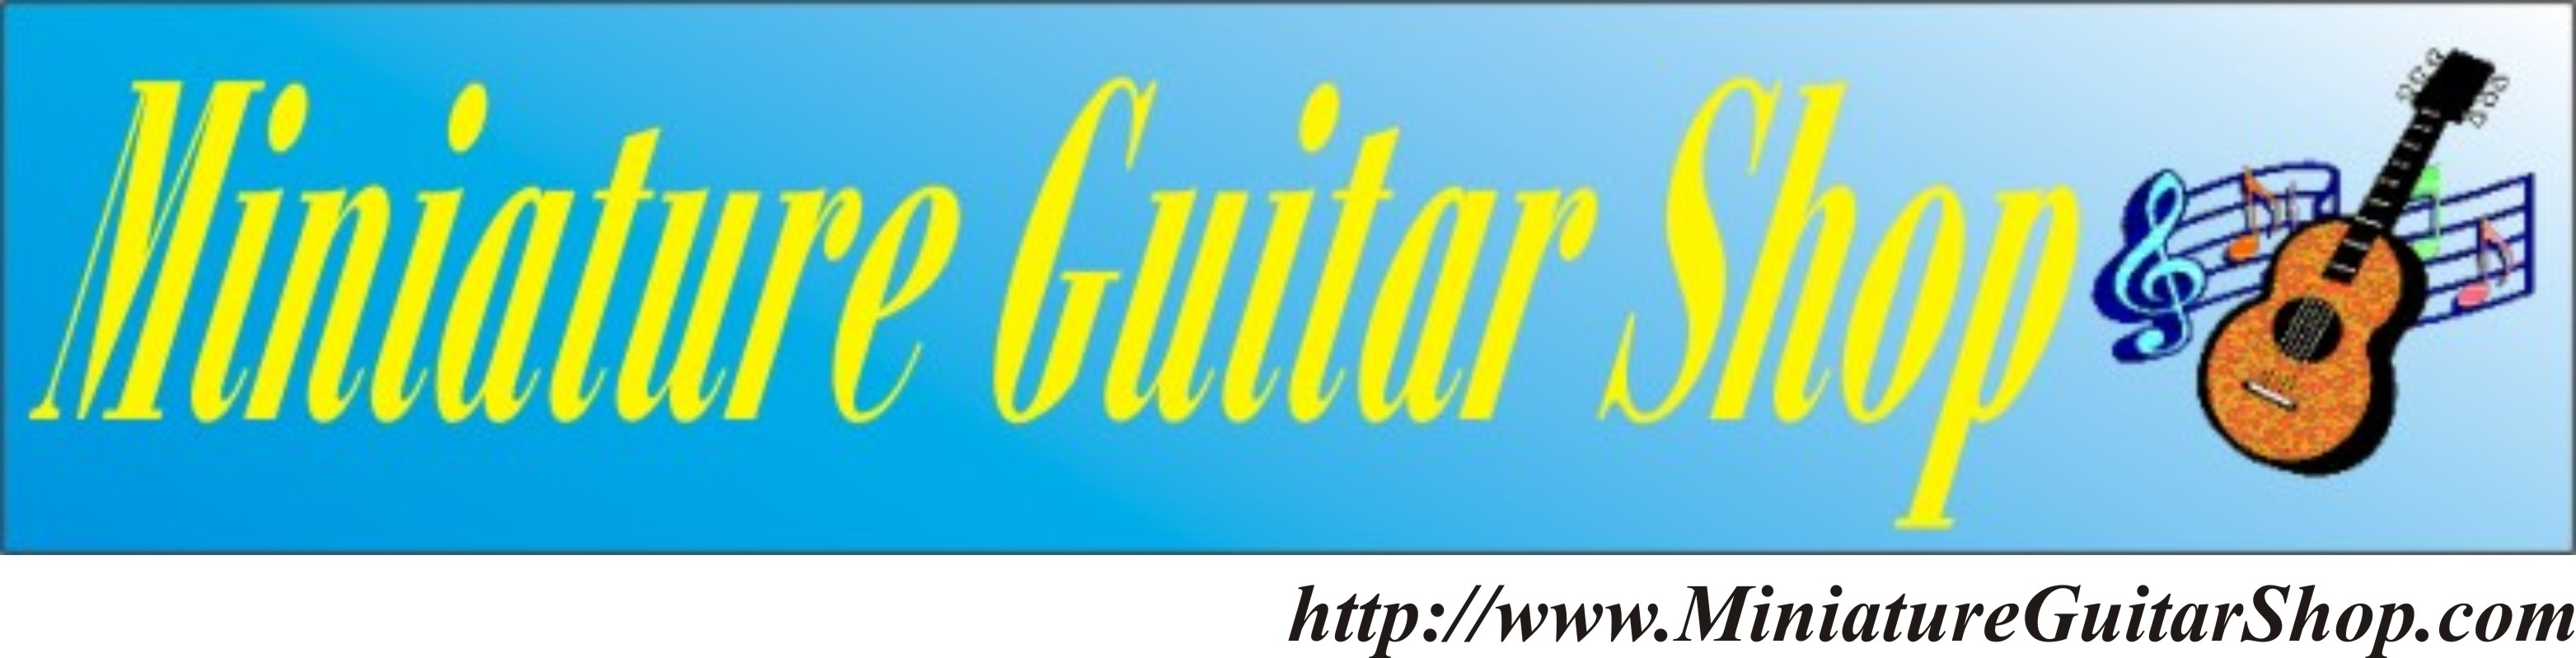 Miniature Guitar Shop